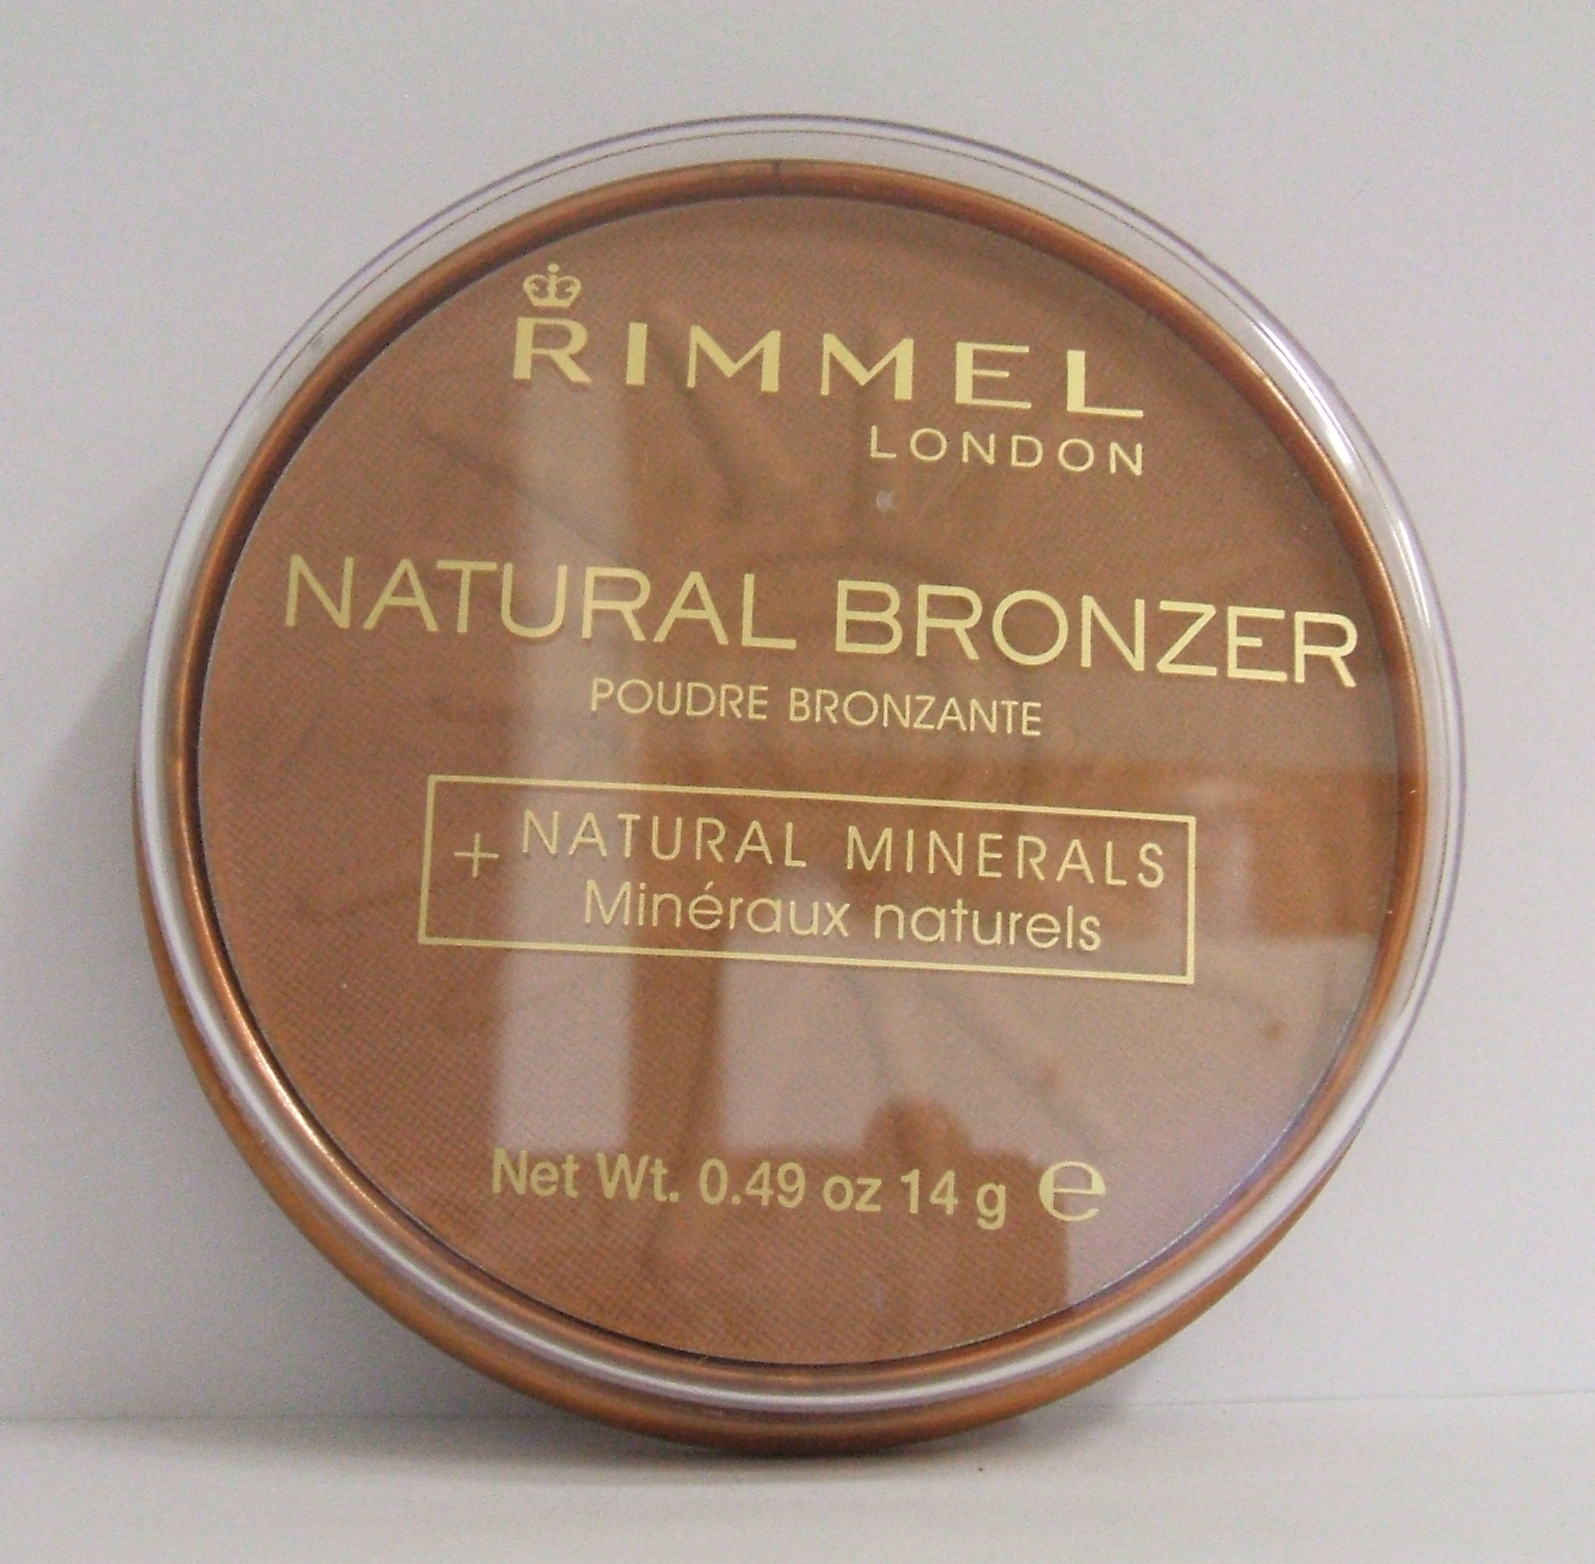 how to change rimmel powder compact